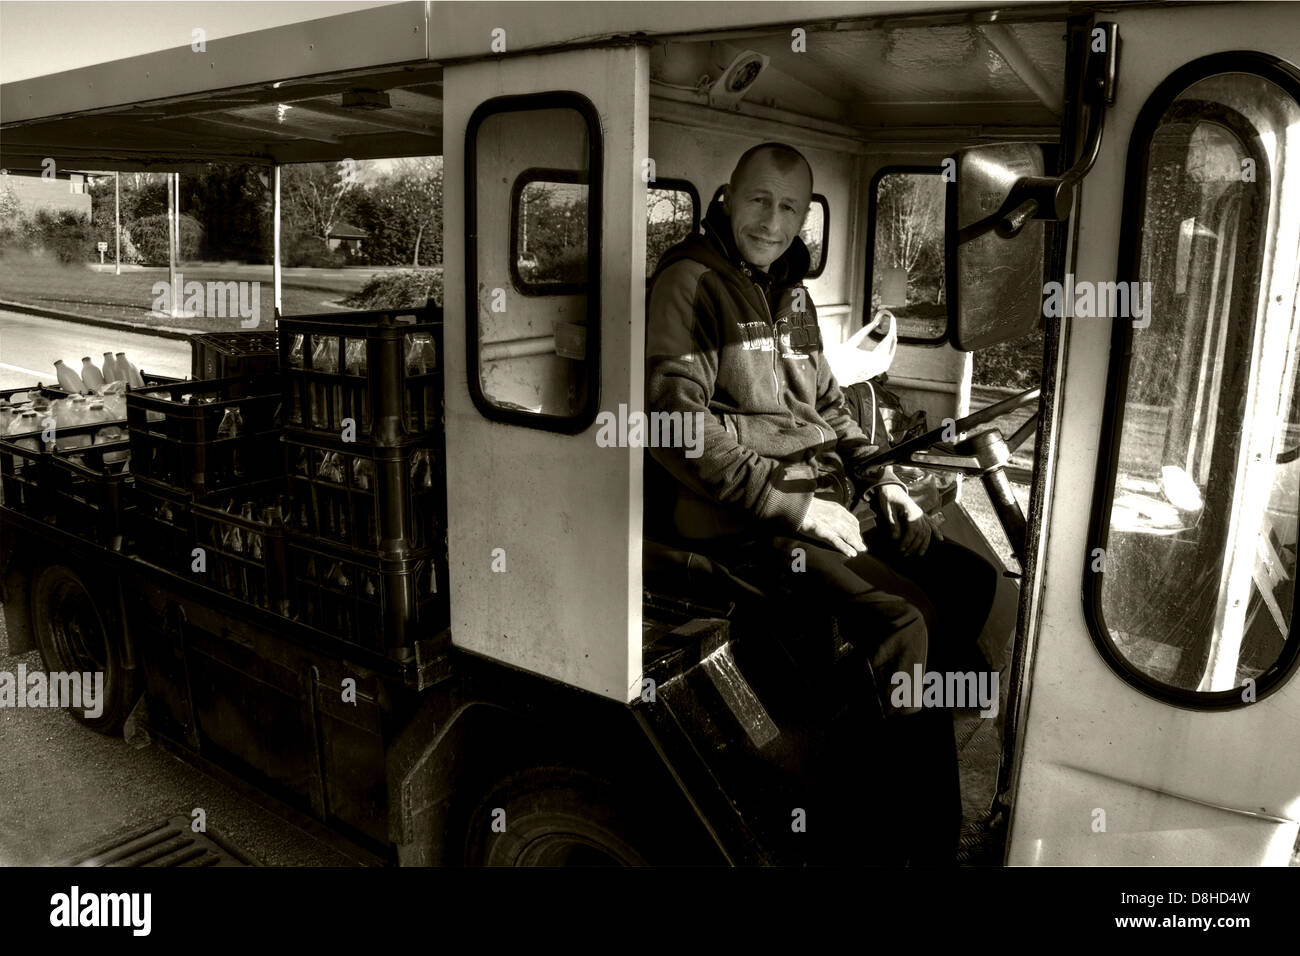 A traditional British electric milkfloat vehicle - Stock Image